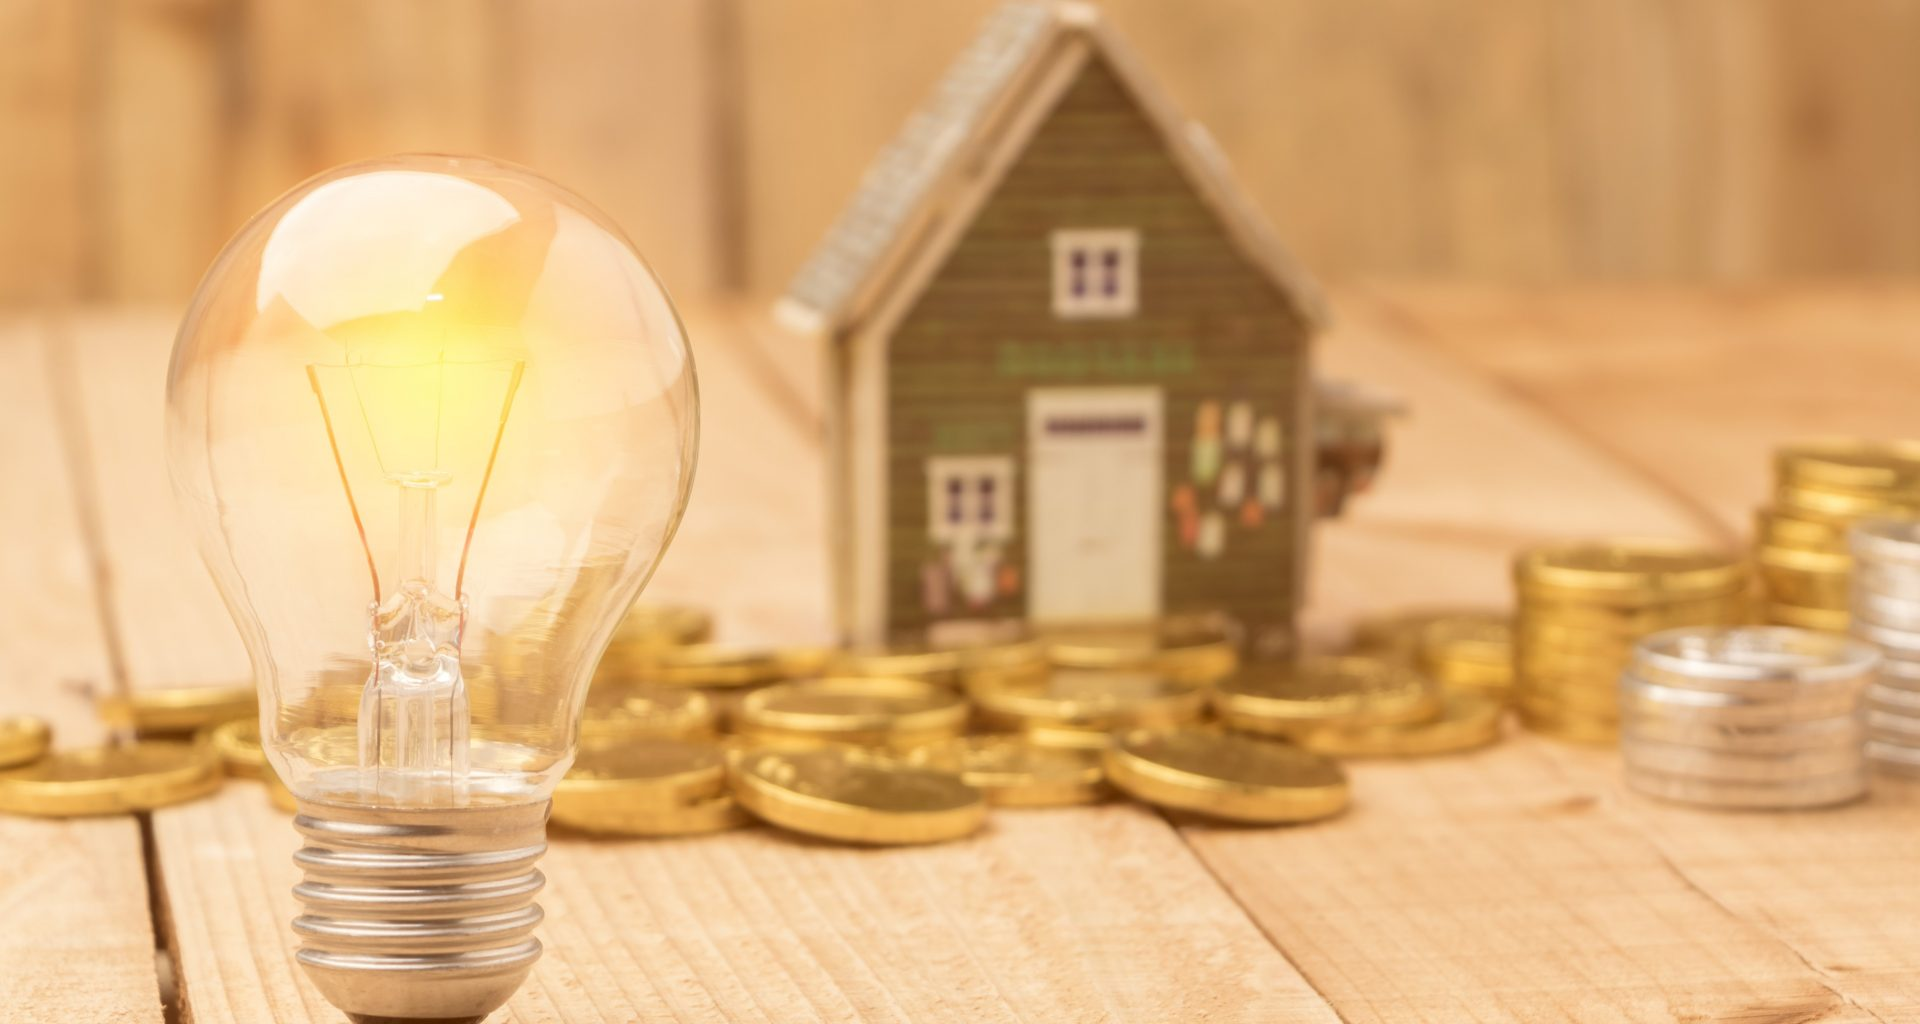 Report examines fairness in UK retail energy market and fuel poverty